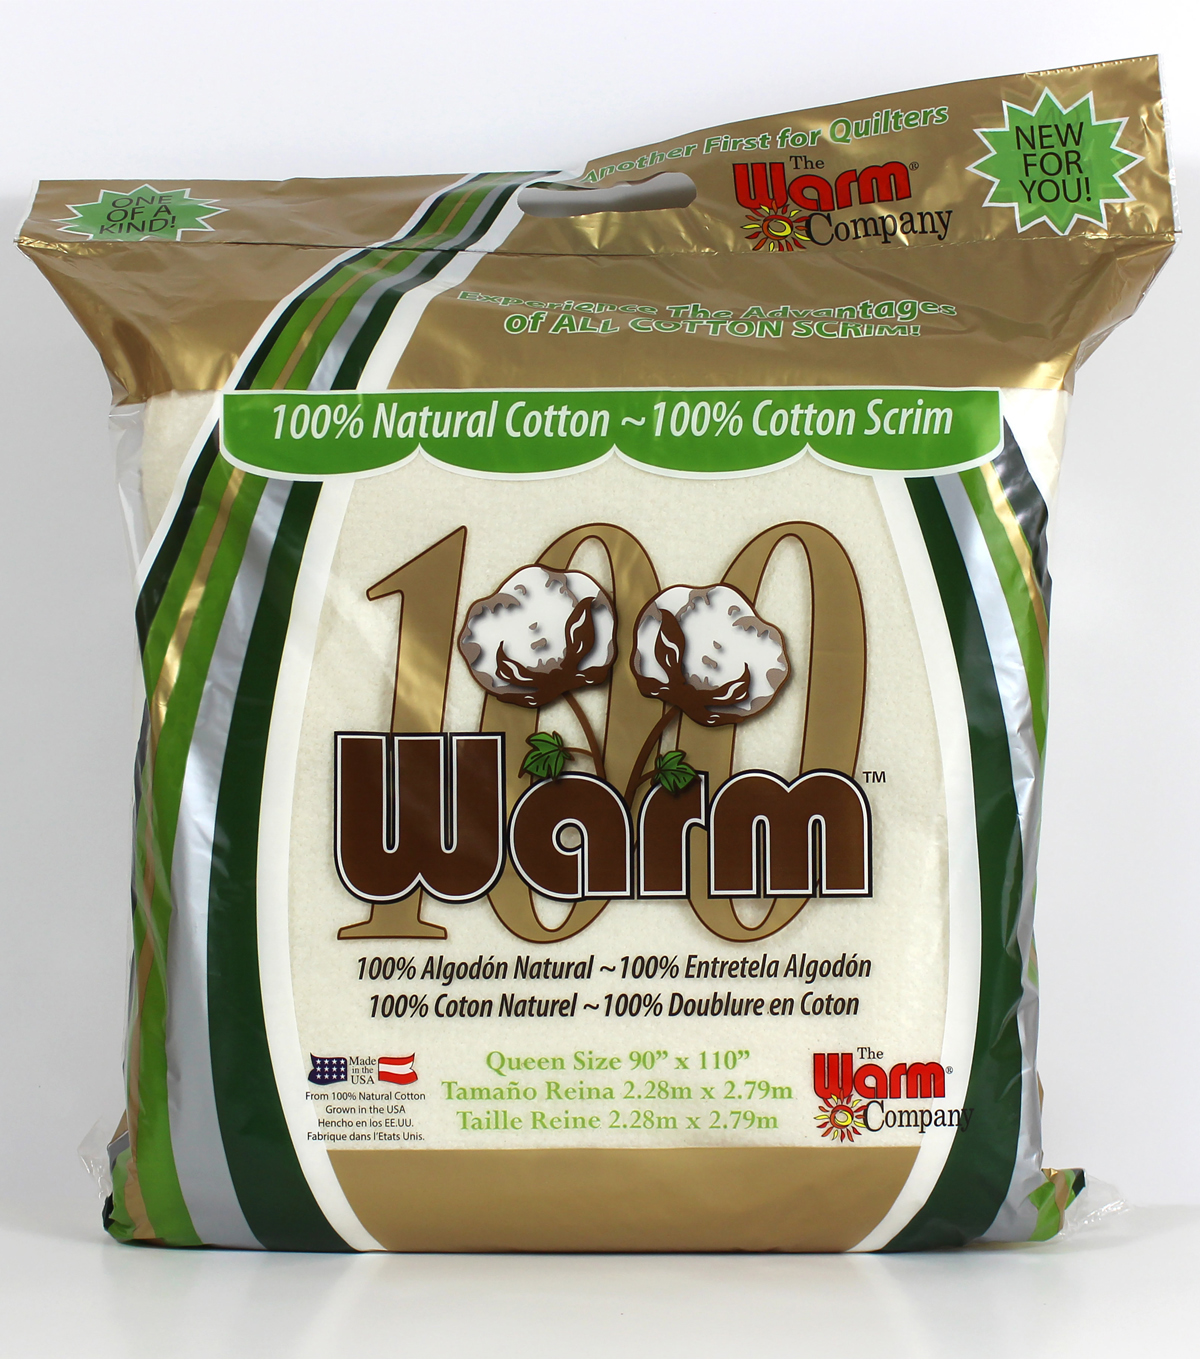 Warm 100 Queen Size Batting